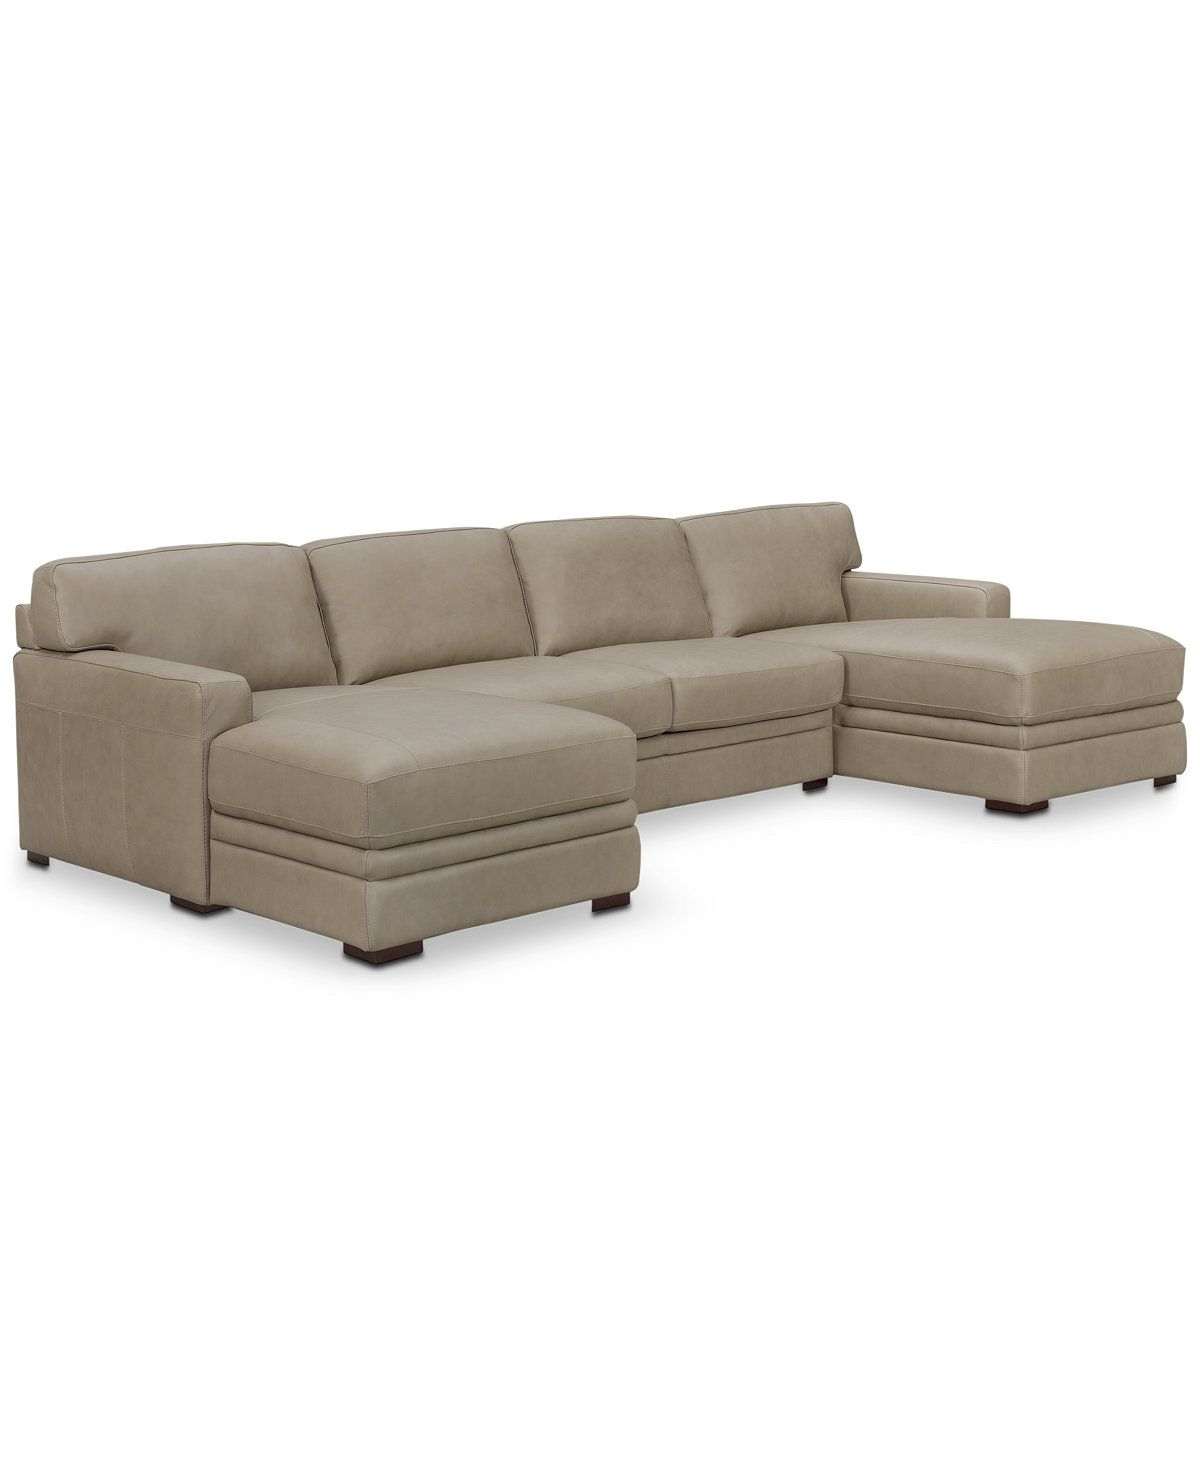 Avenell 3 Pc Leather Sectional with Double Chaise Created for